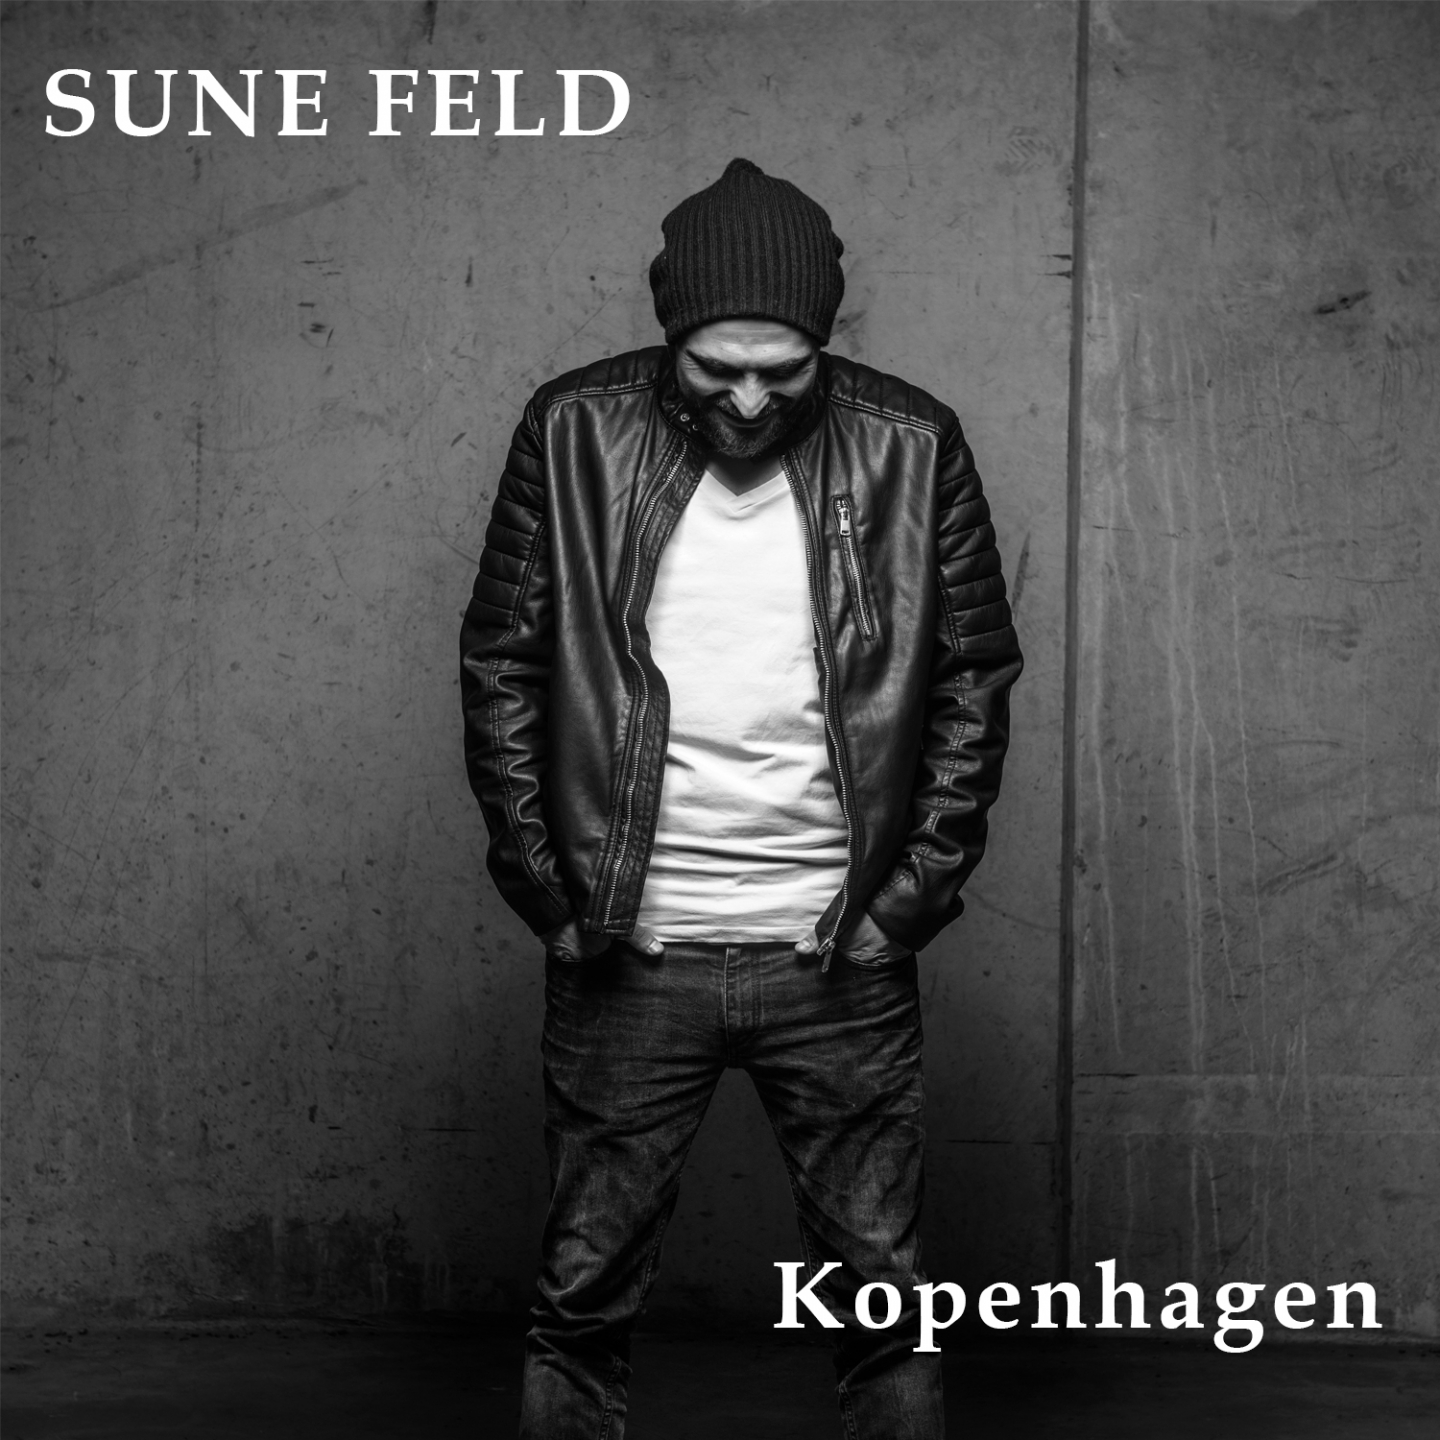 Sune Feld – 'Kopenhagen' (Single)